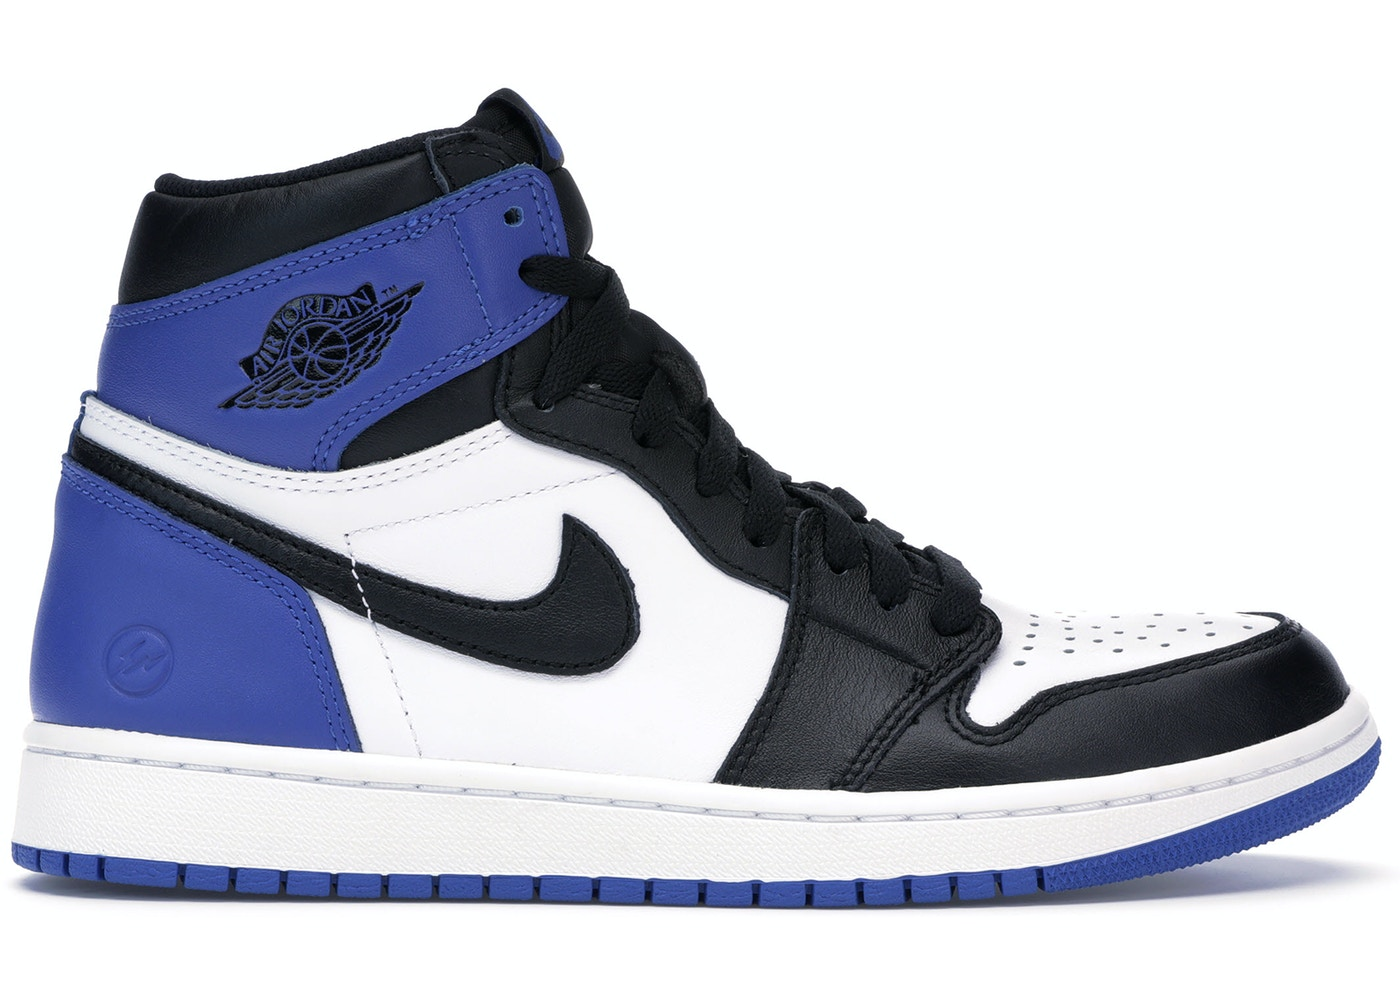 best website a84ad 6ed60 Jordan 1 Retro Fragment - 716371-040